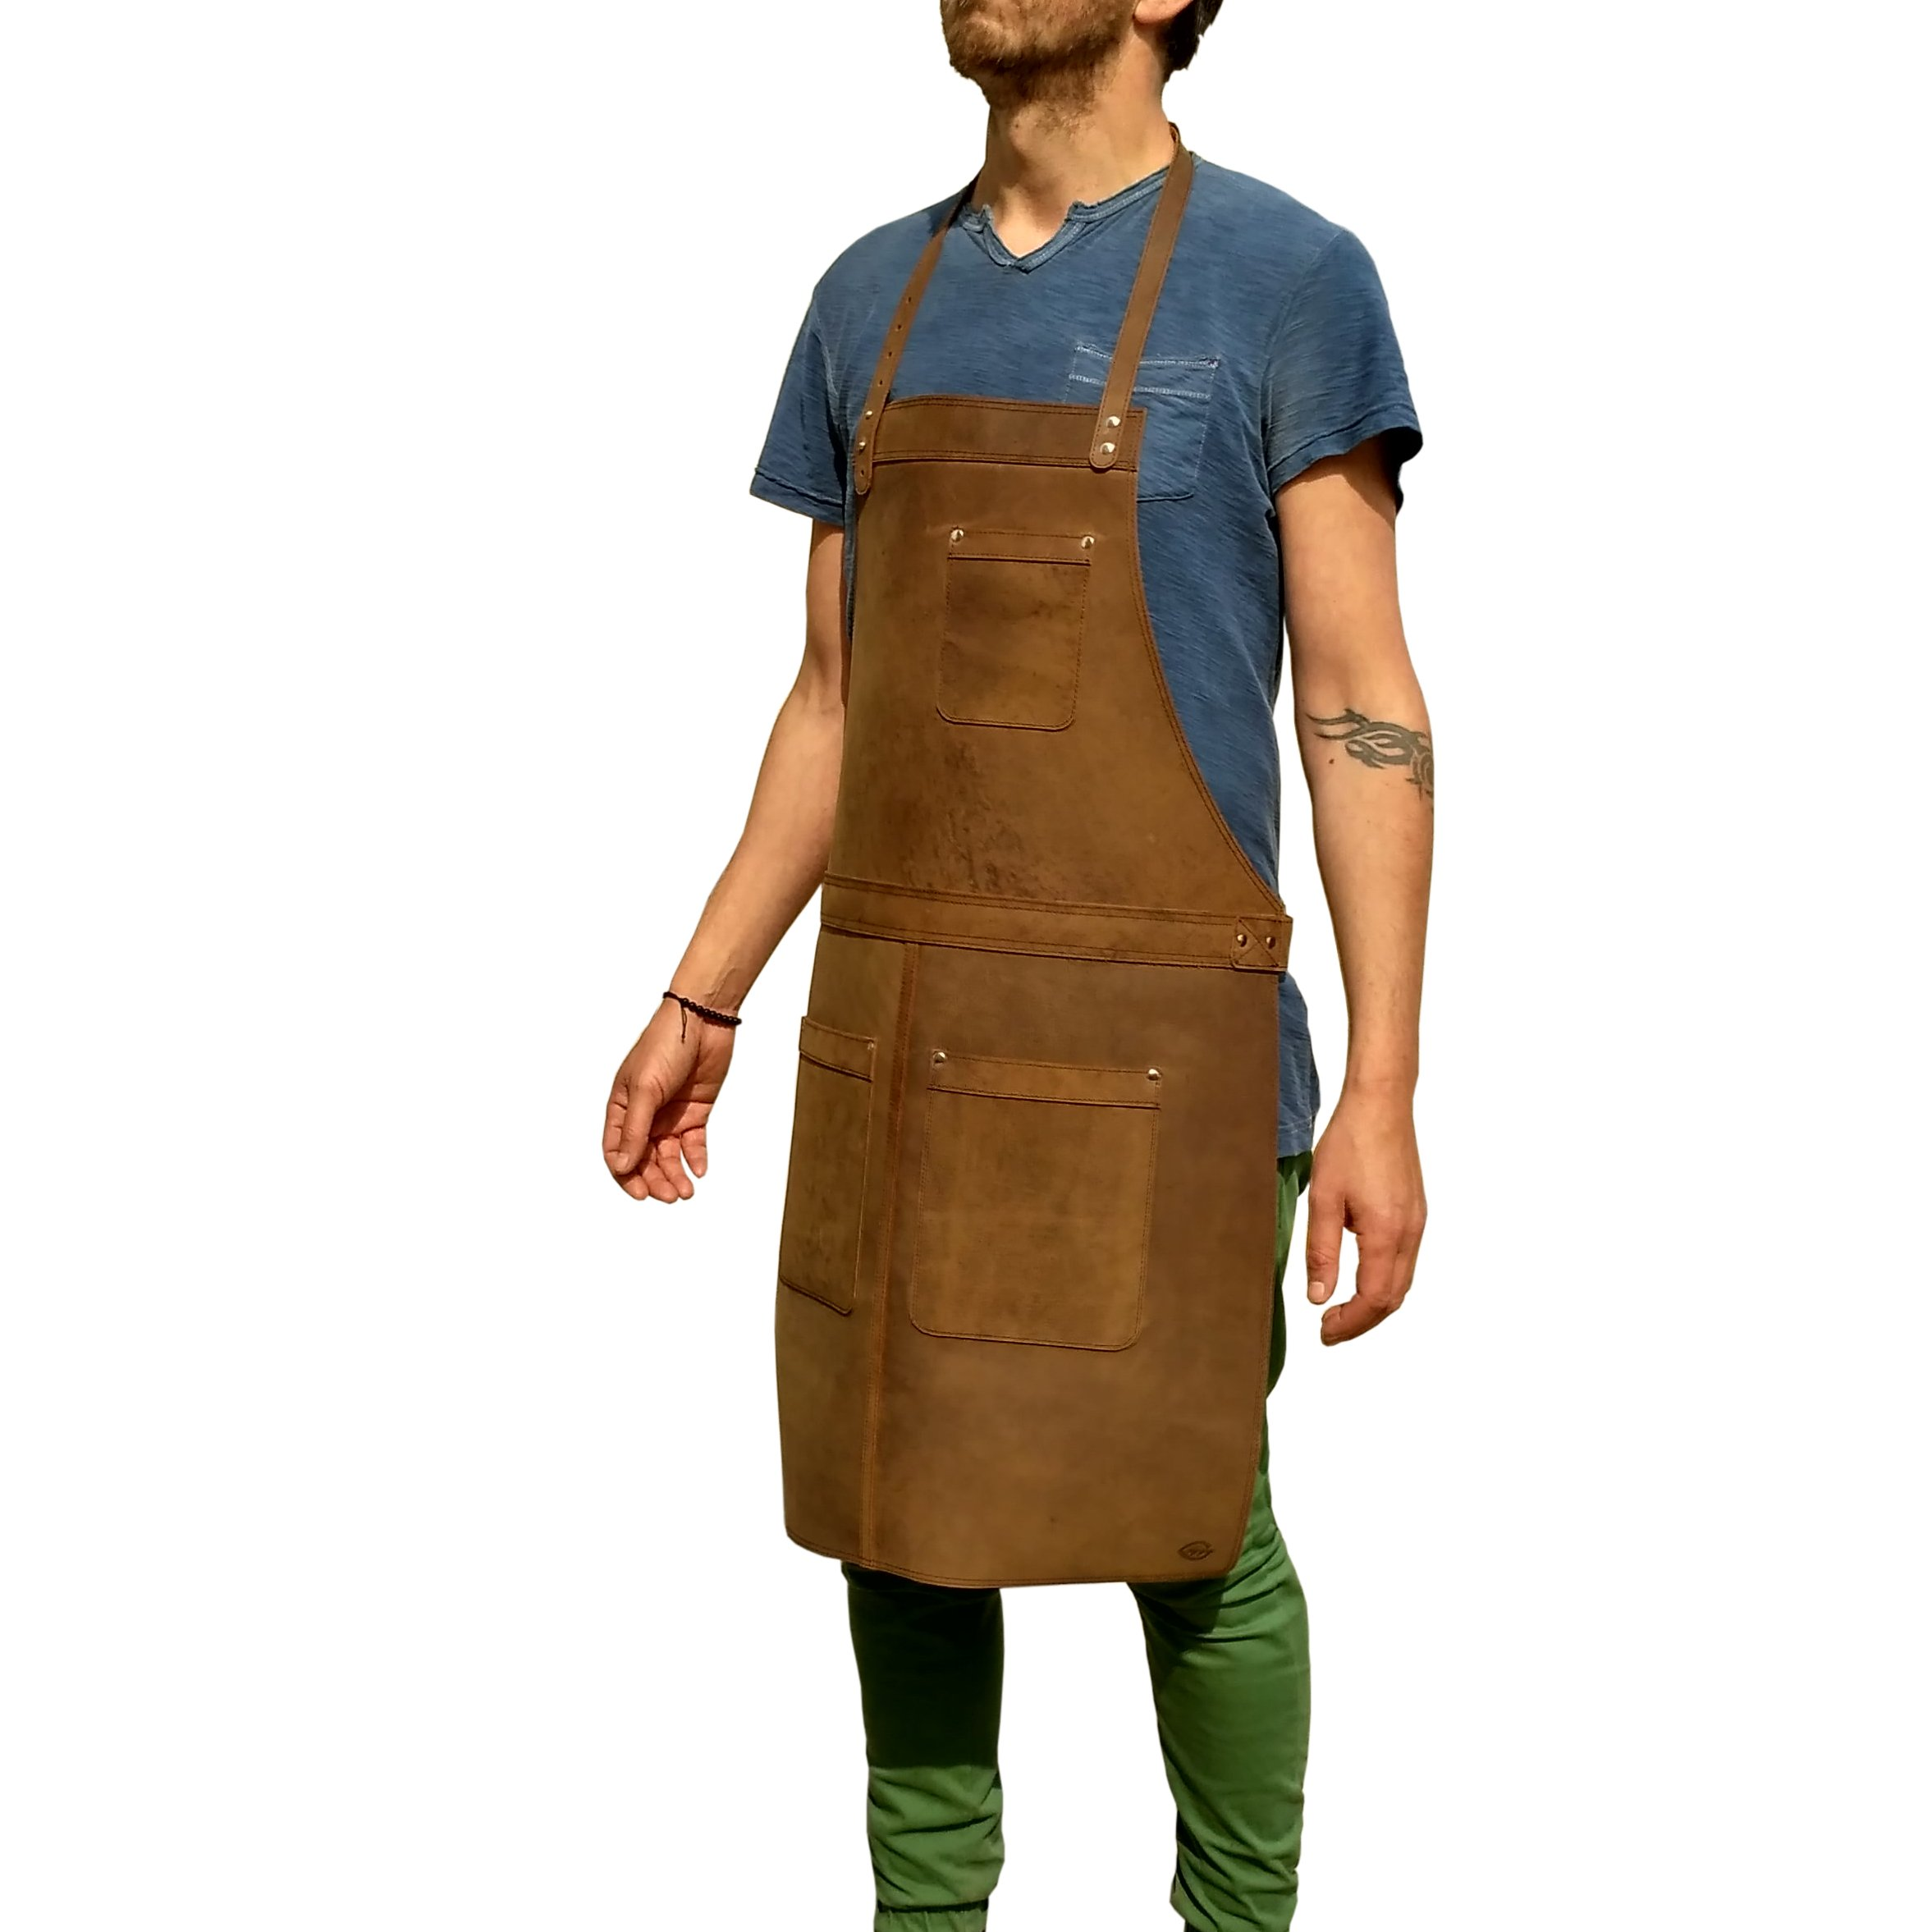 ONE LEAF Ultimate Leather Apron for Workshop and Kitchen (Silver Color Hardware)